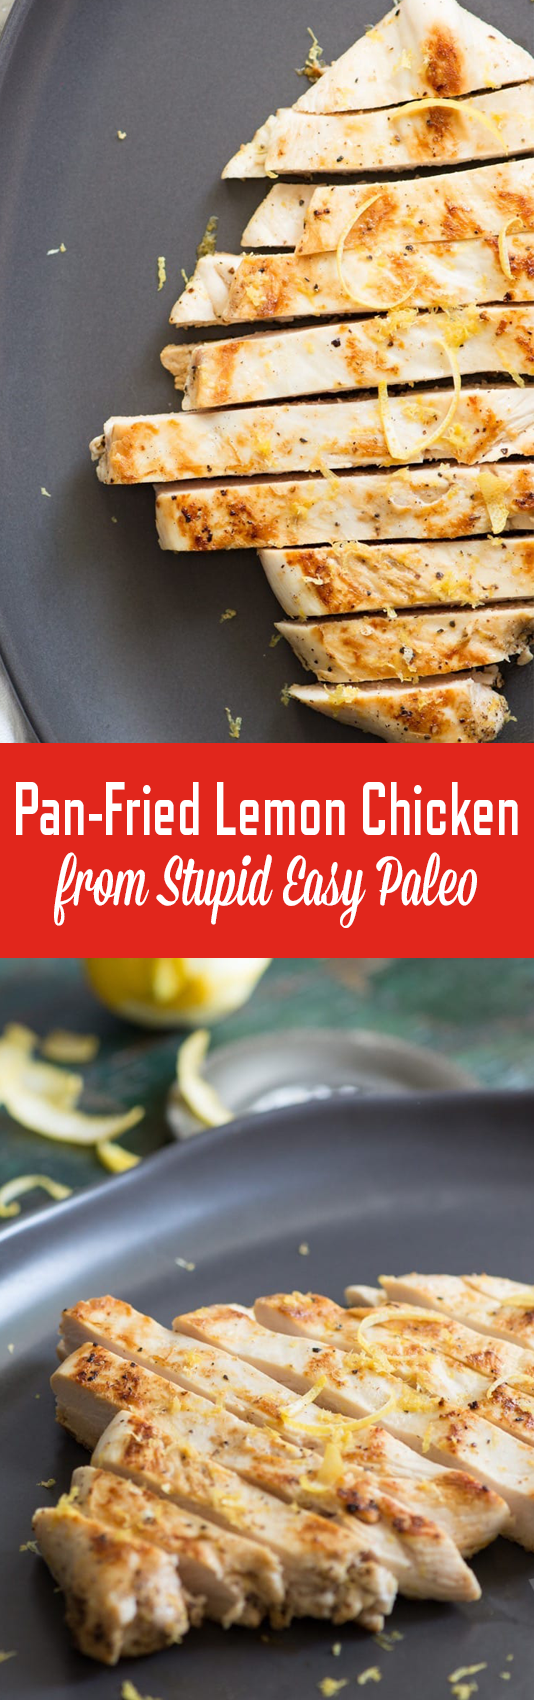 Easy Pan-Friend Lemon Chicken | StupidEasyPaleo.com